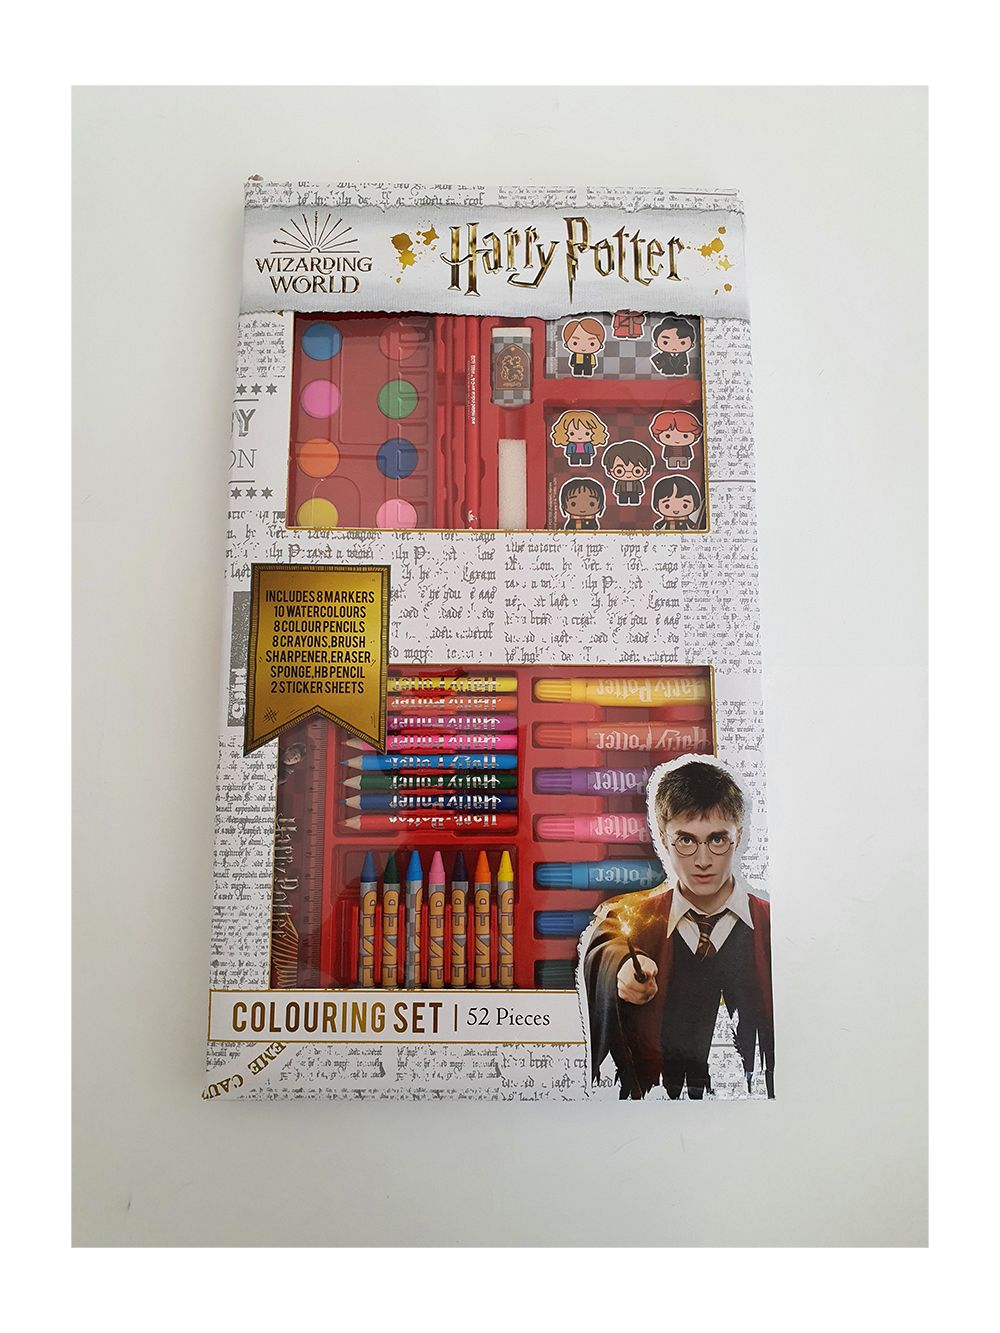 Harry Potter stationery colouring set